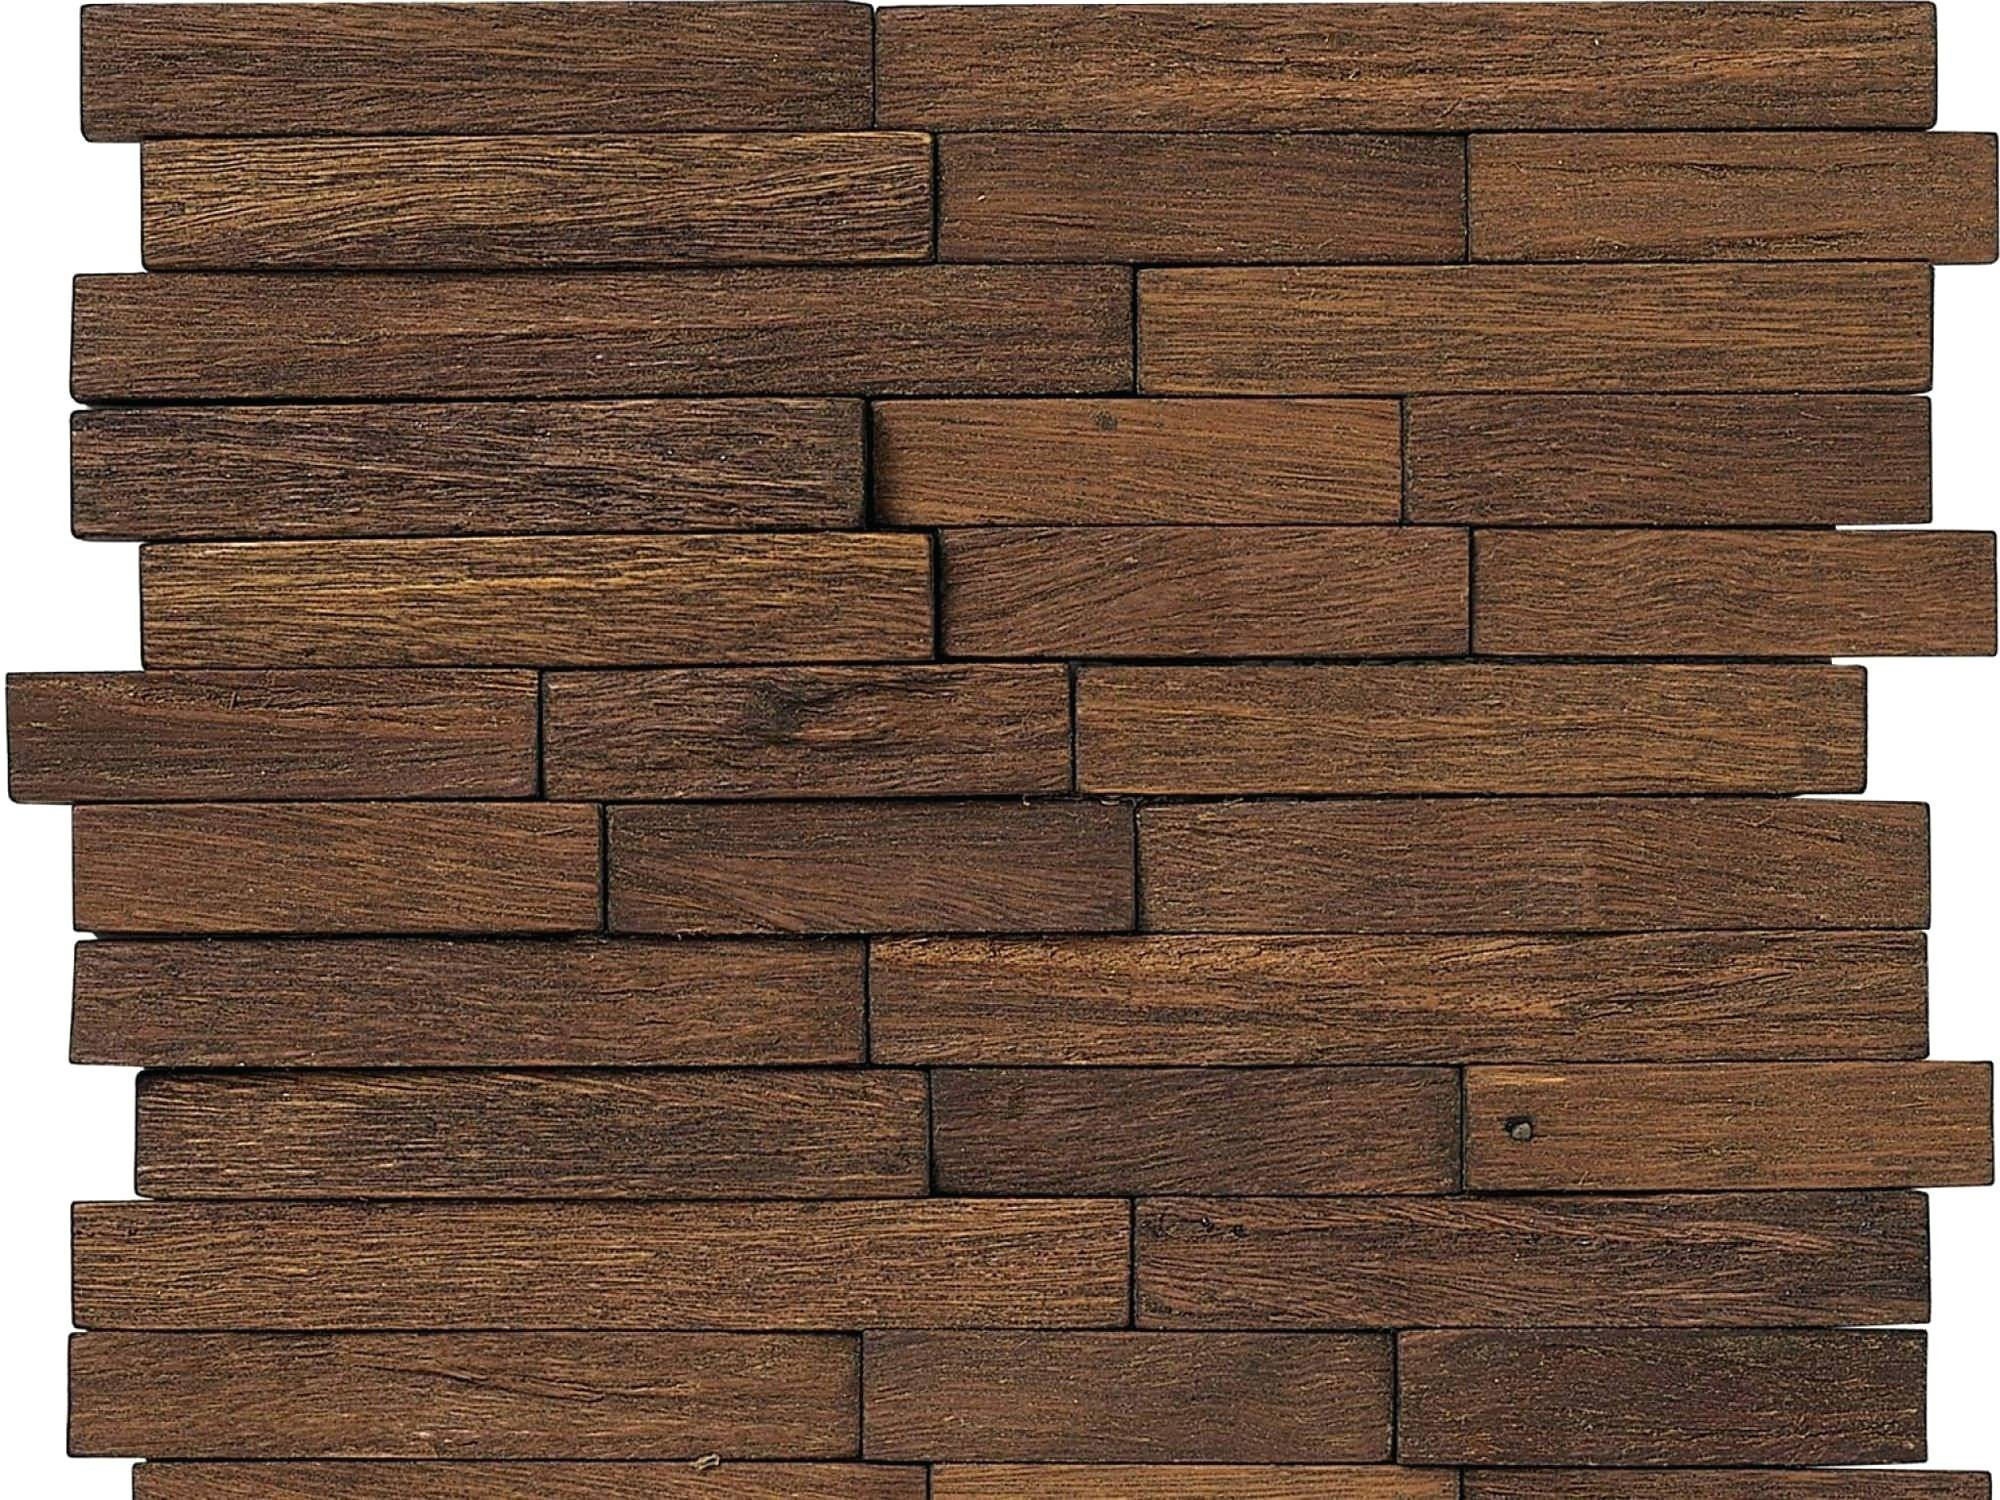 15 Stylish Grey Hardwood Floors Modern 2021 free download grey hardwood floors modern of the wood maker page 2 wood wallpaper within floor patterns new metal wall art panels fresh 1 kirkland wall decor home design 0d ideas of wood